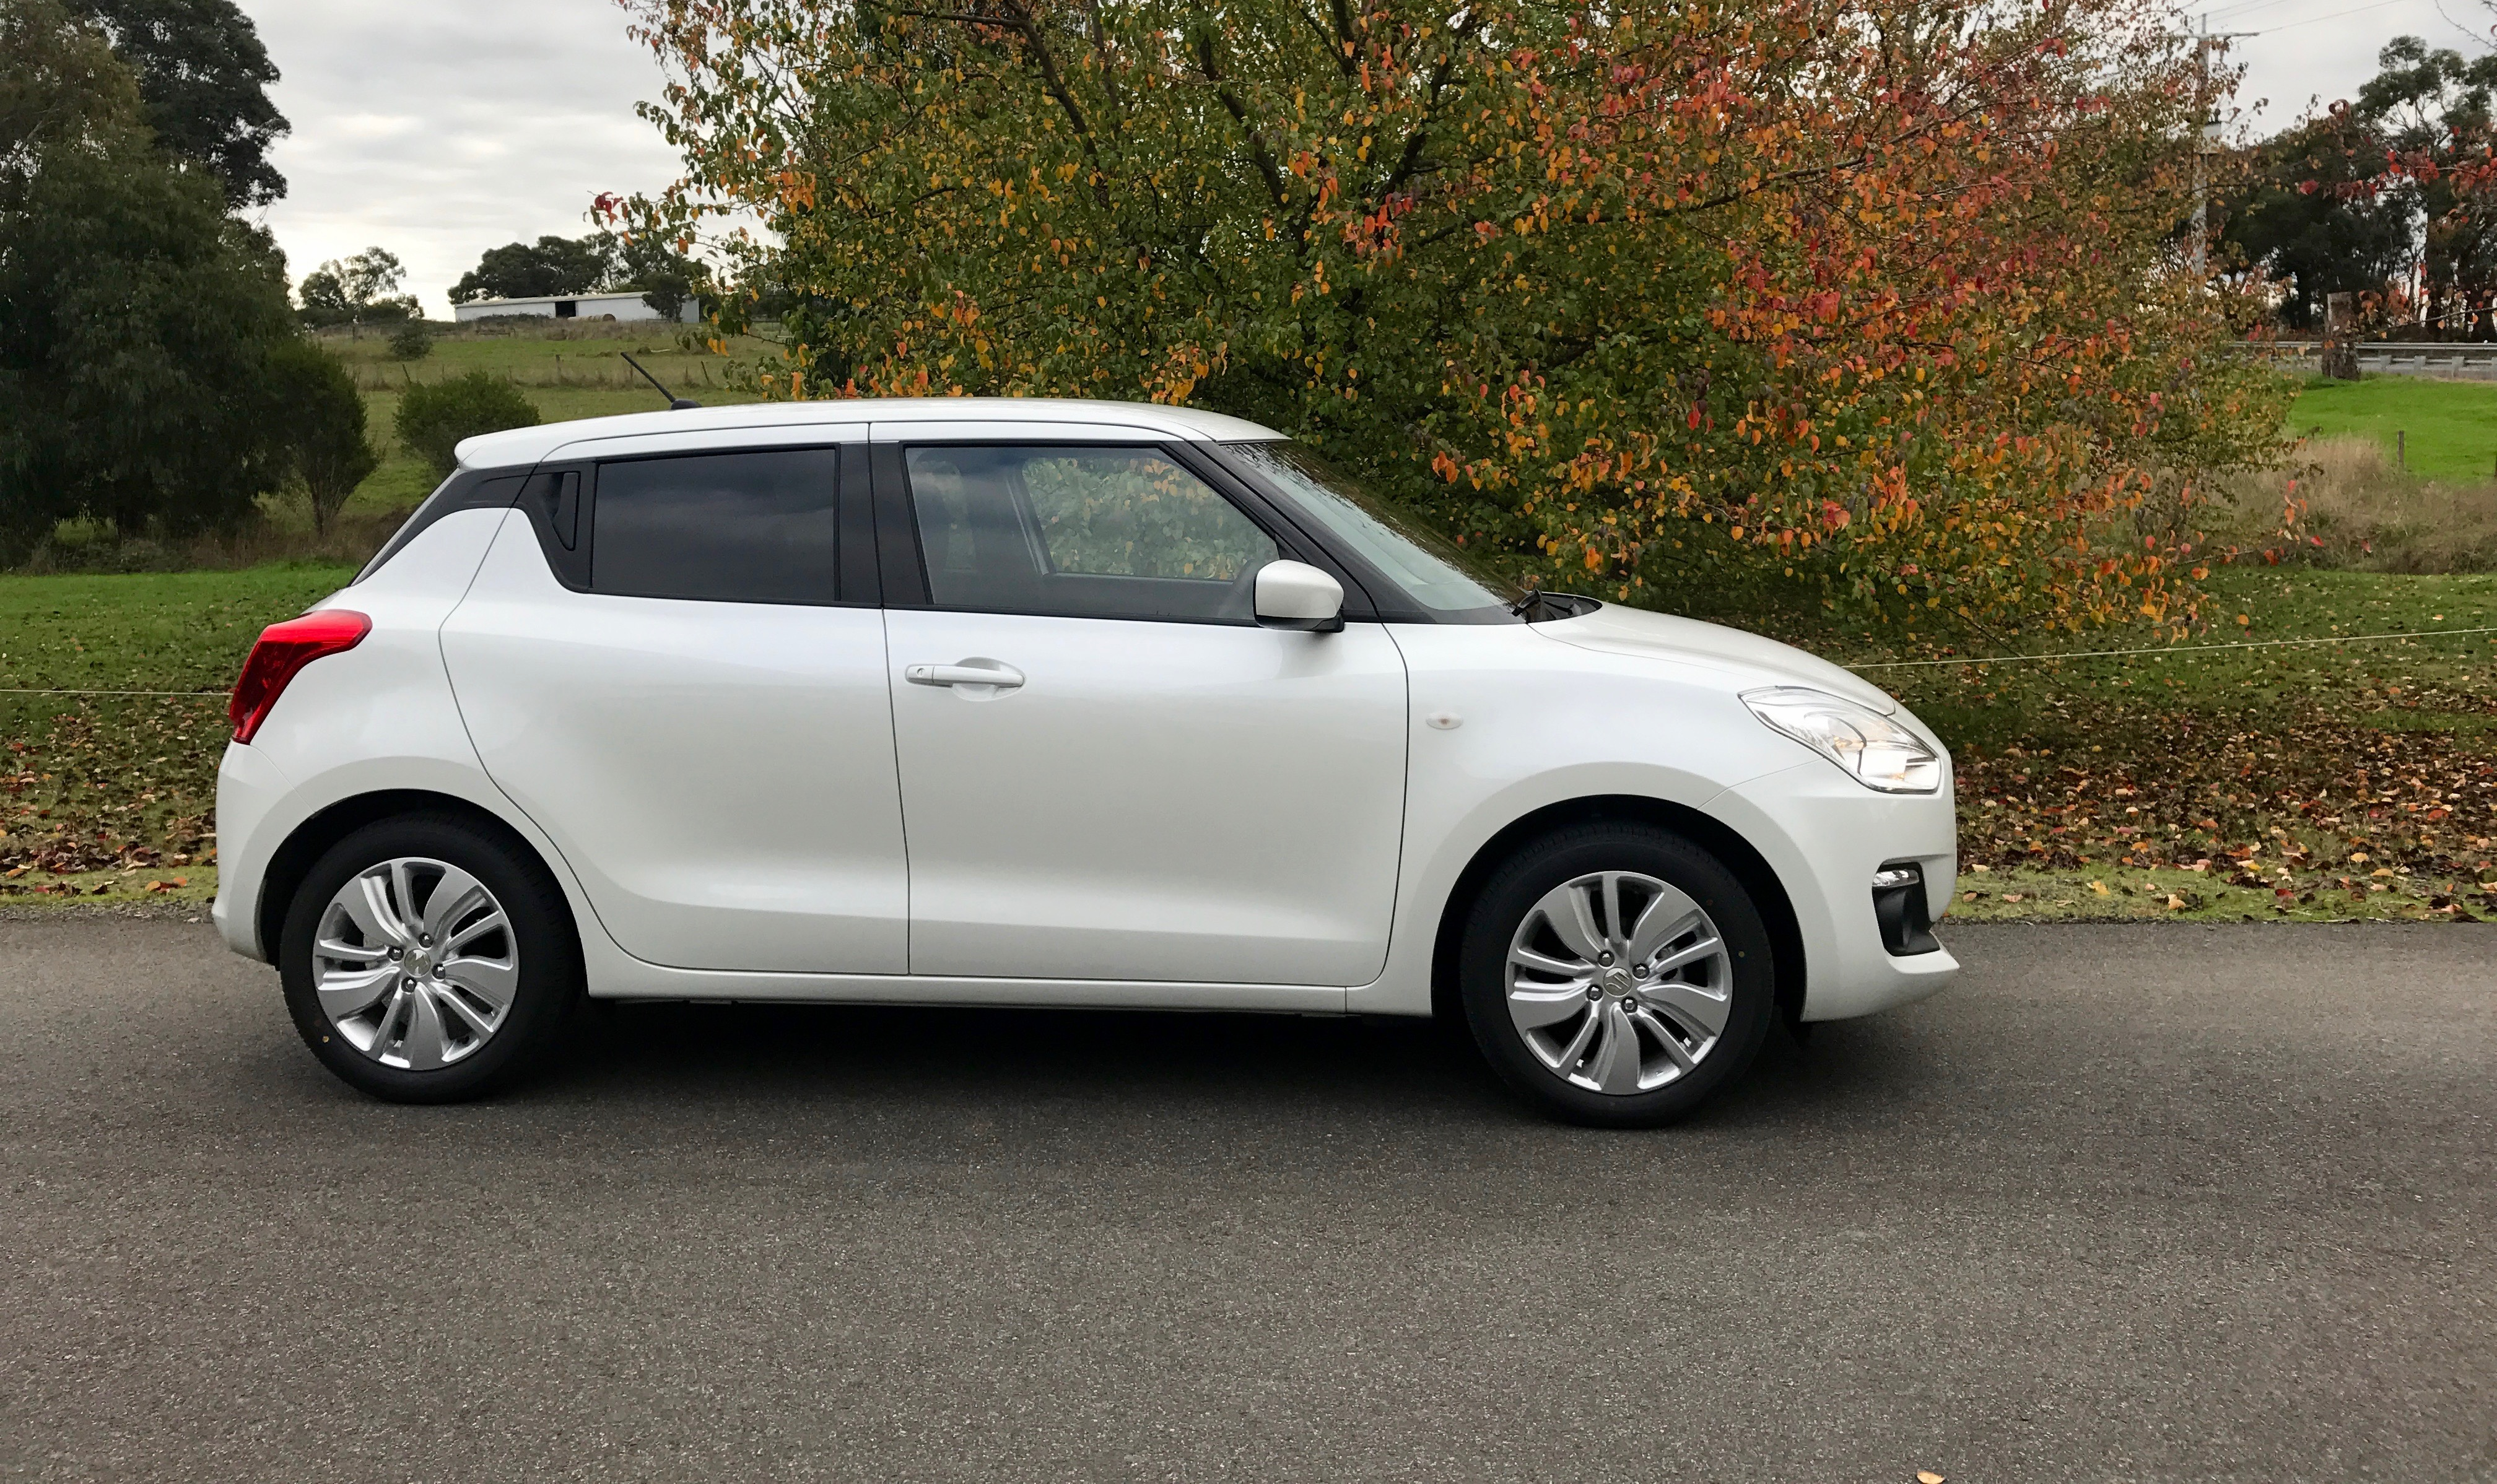 2017 suzuki swift pricing and specs photos 1 of 17. Black Bedroom Furniture Sets. Home Design Ideas